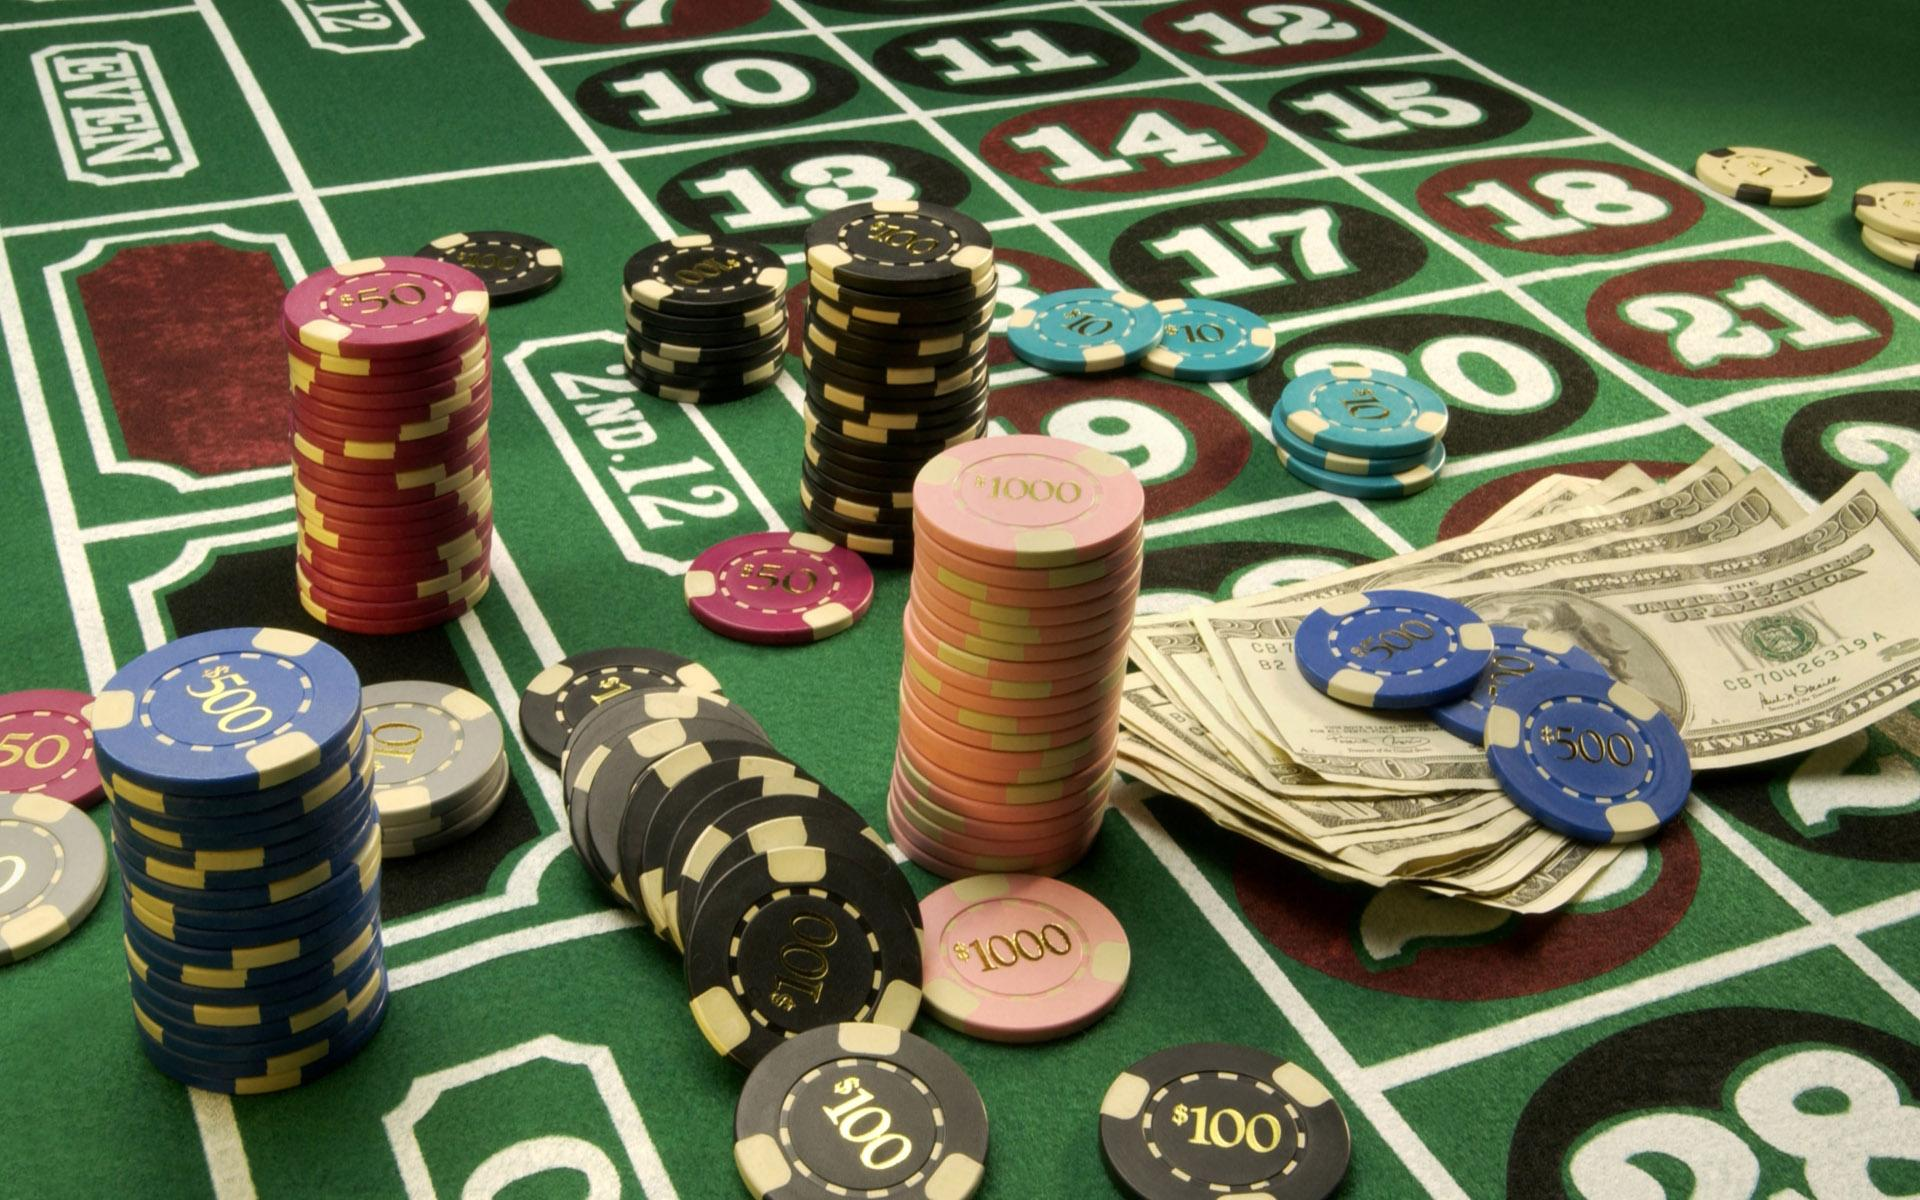 Casinos online en venezuela en bolivares kingston charity casino